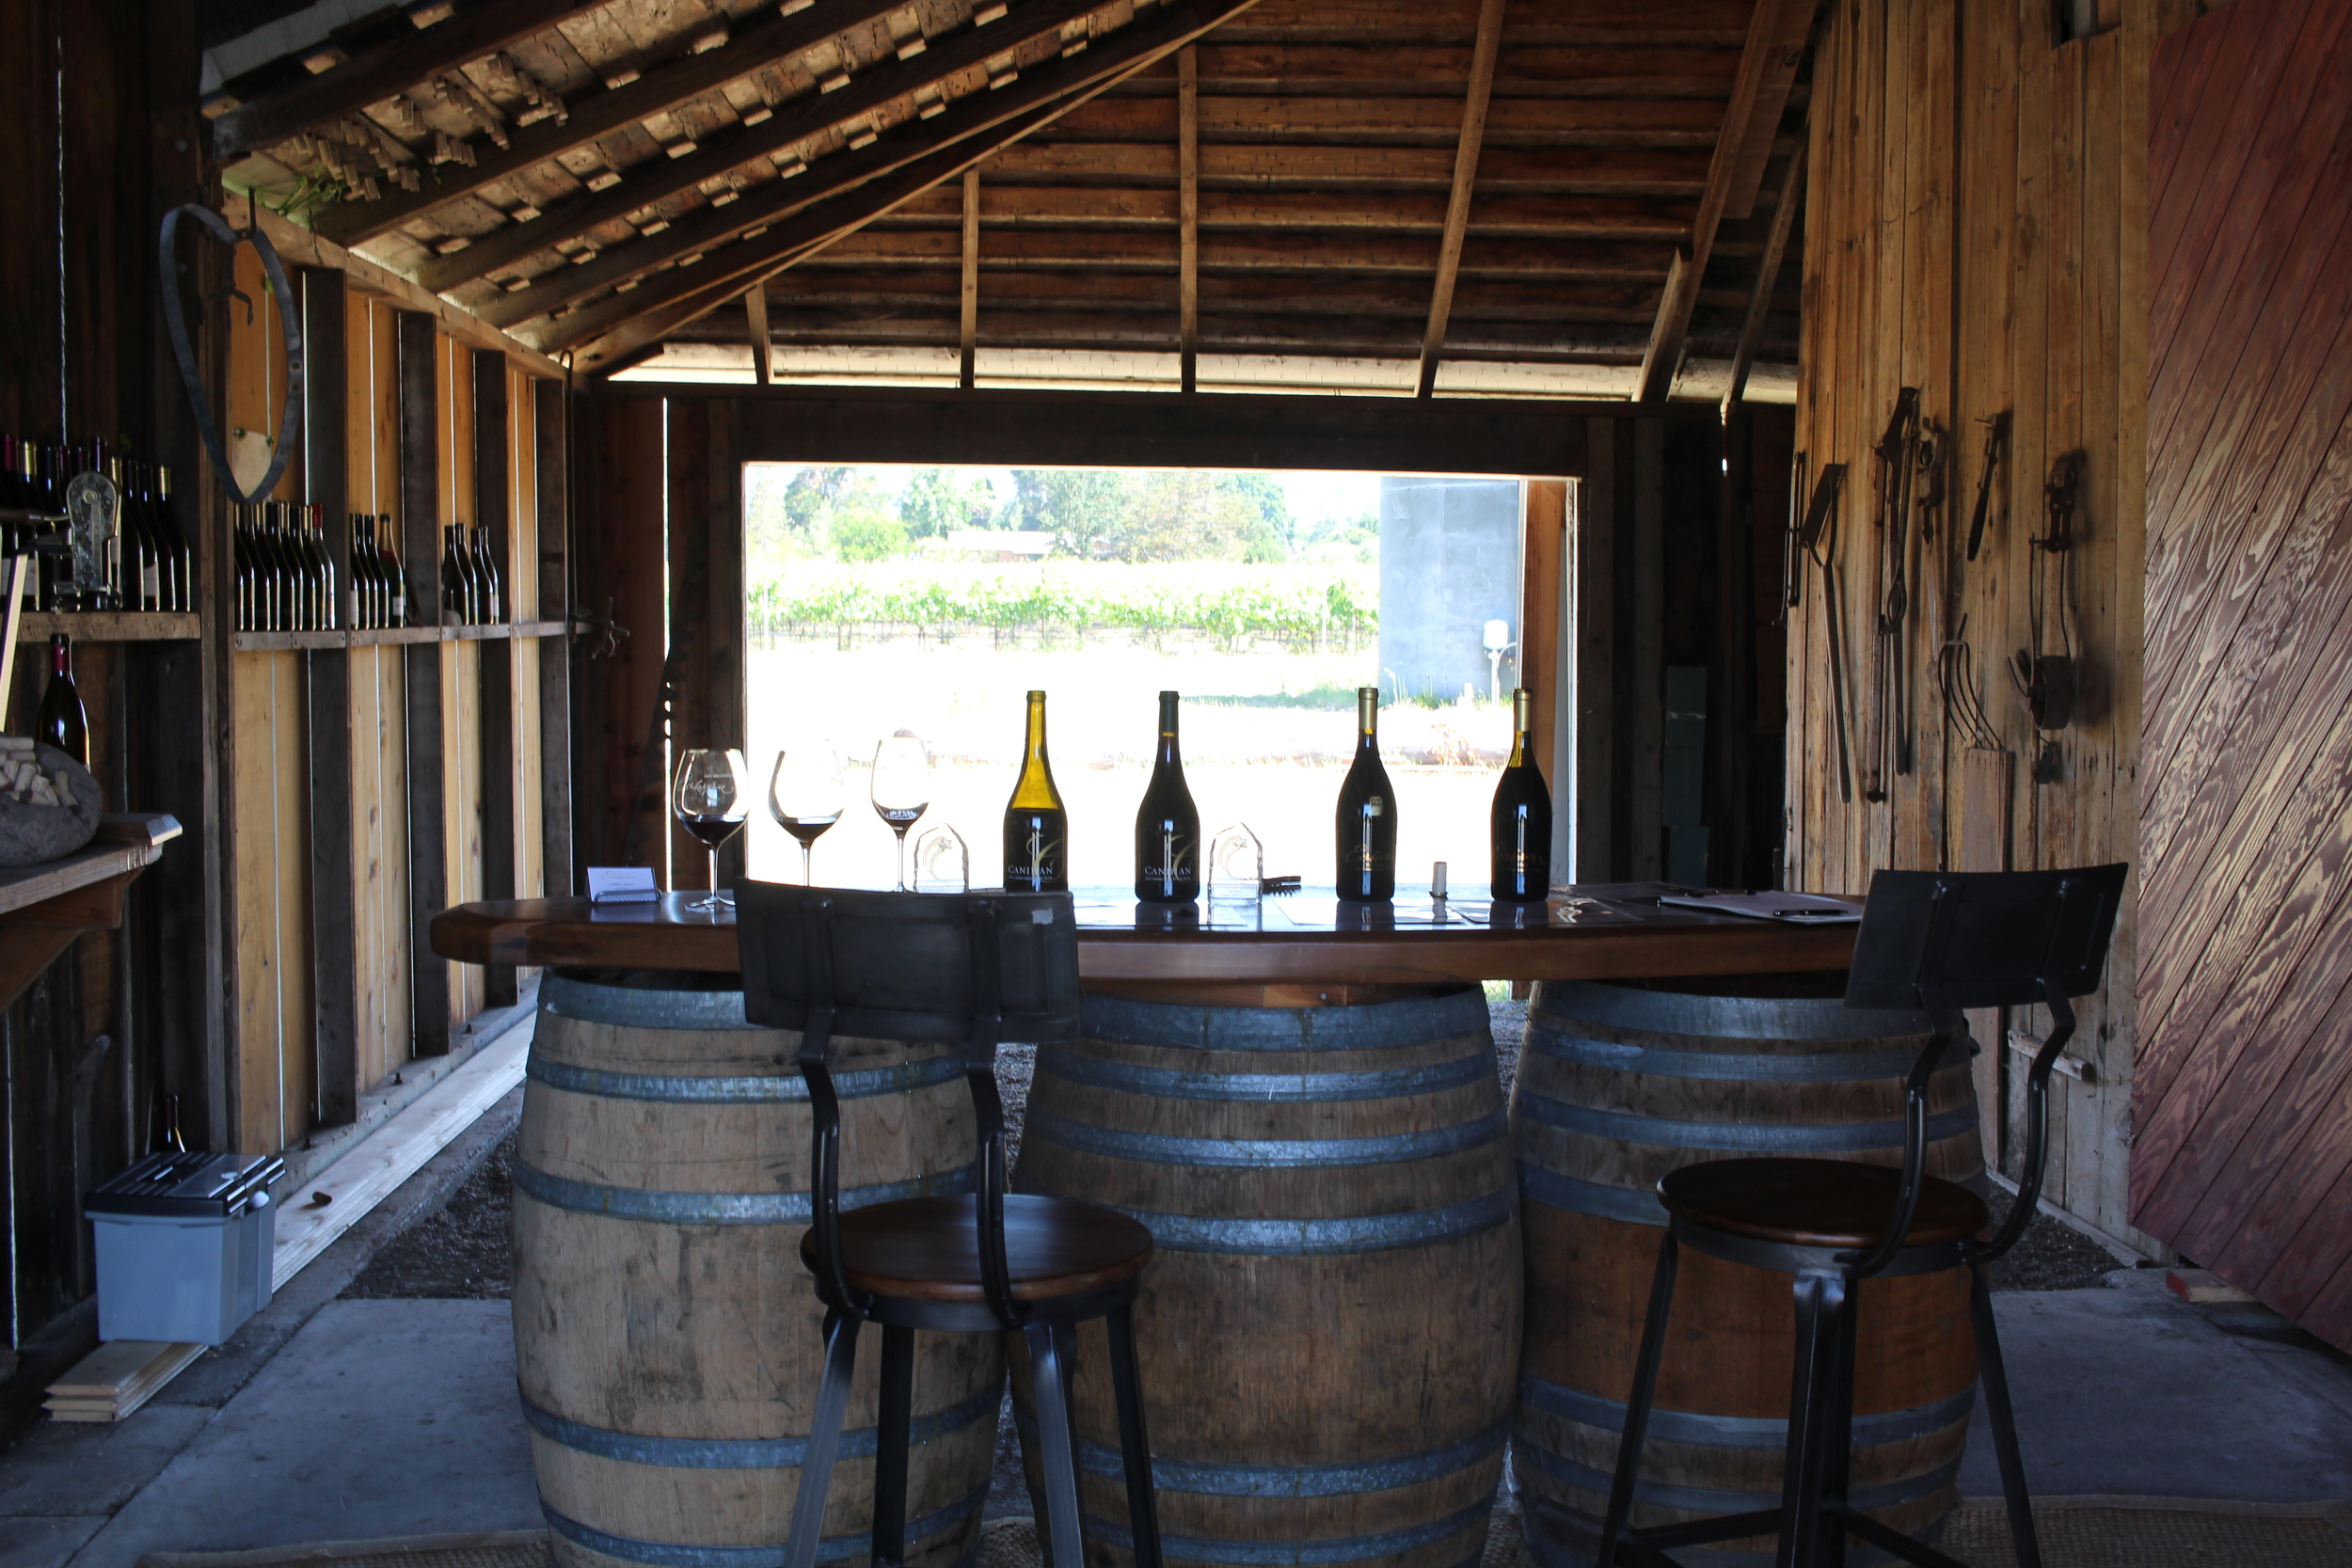 Canihan Winery's tasting room is as simple as it gets